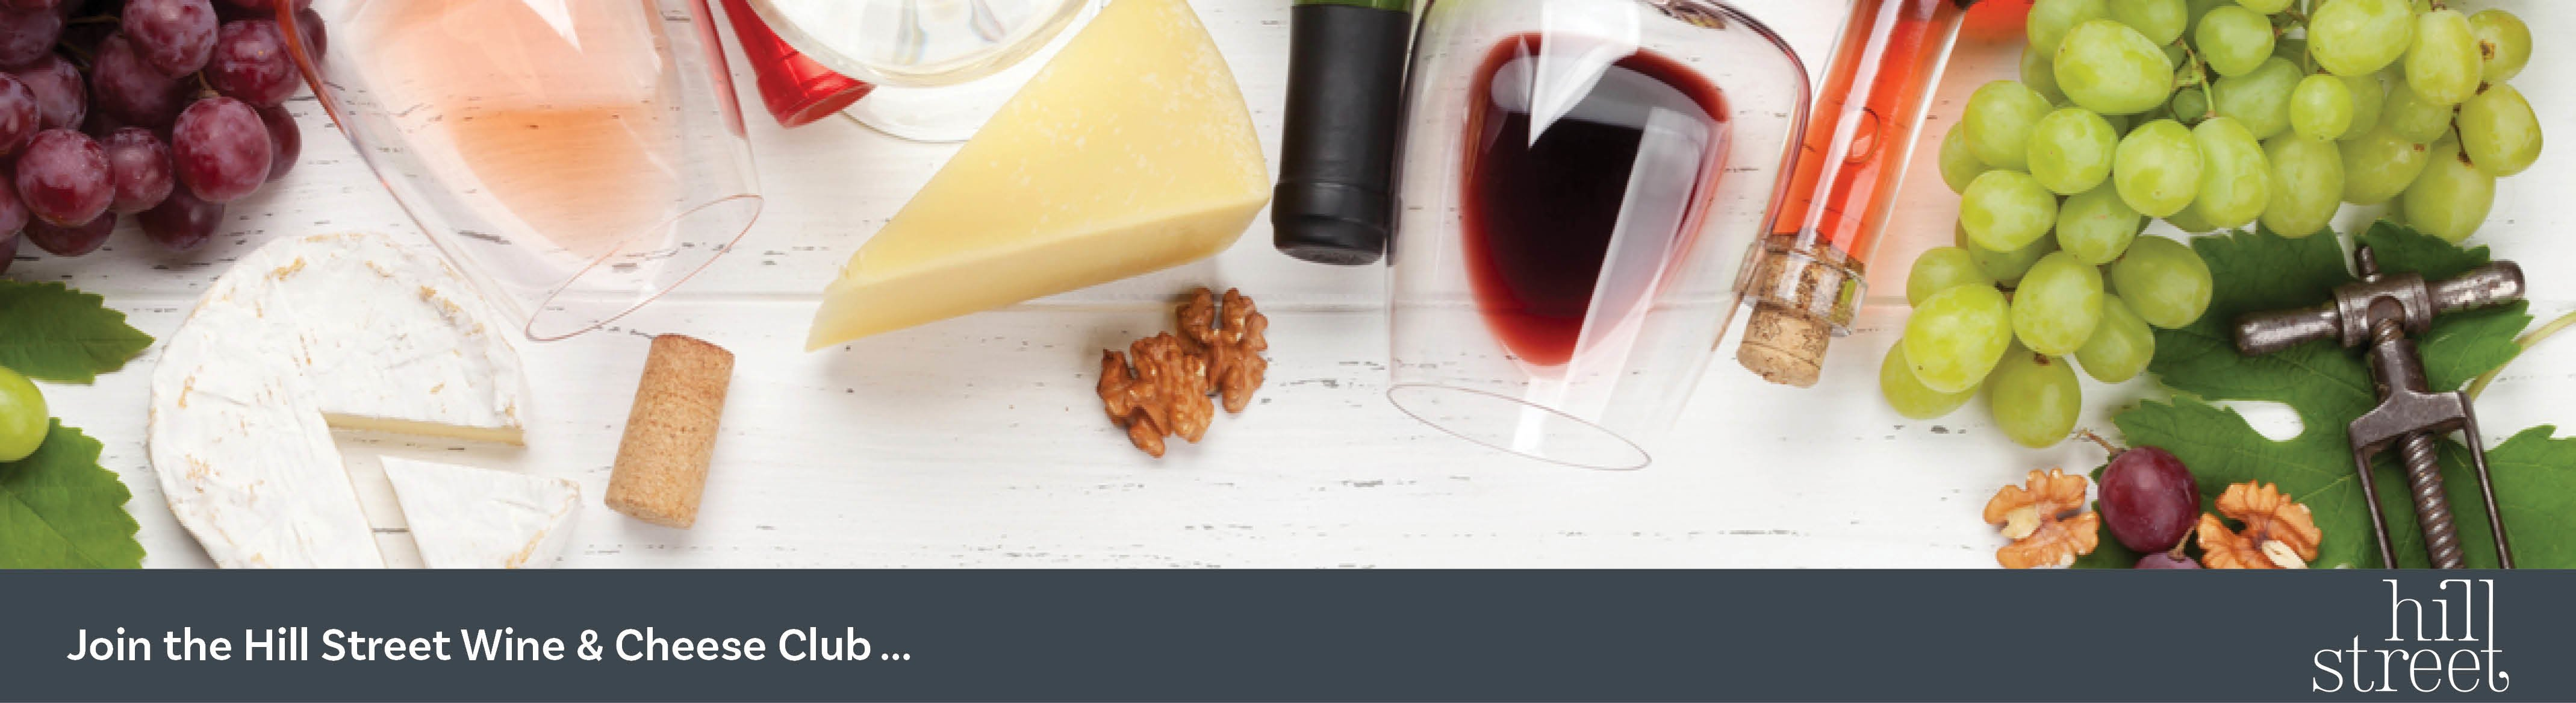 Join the Hill Street wine and cheese club